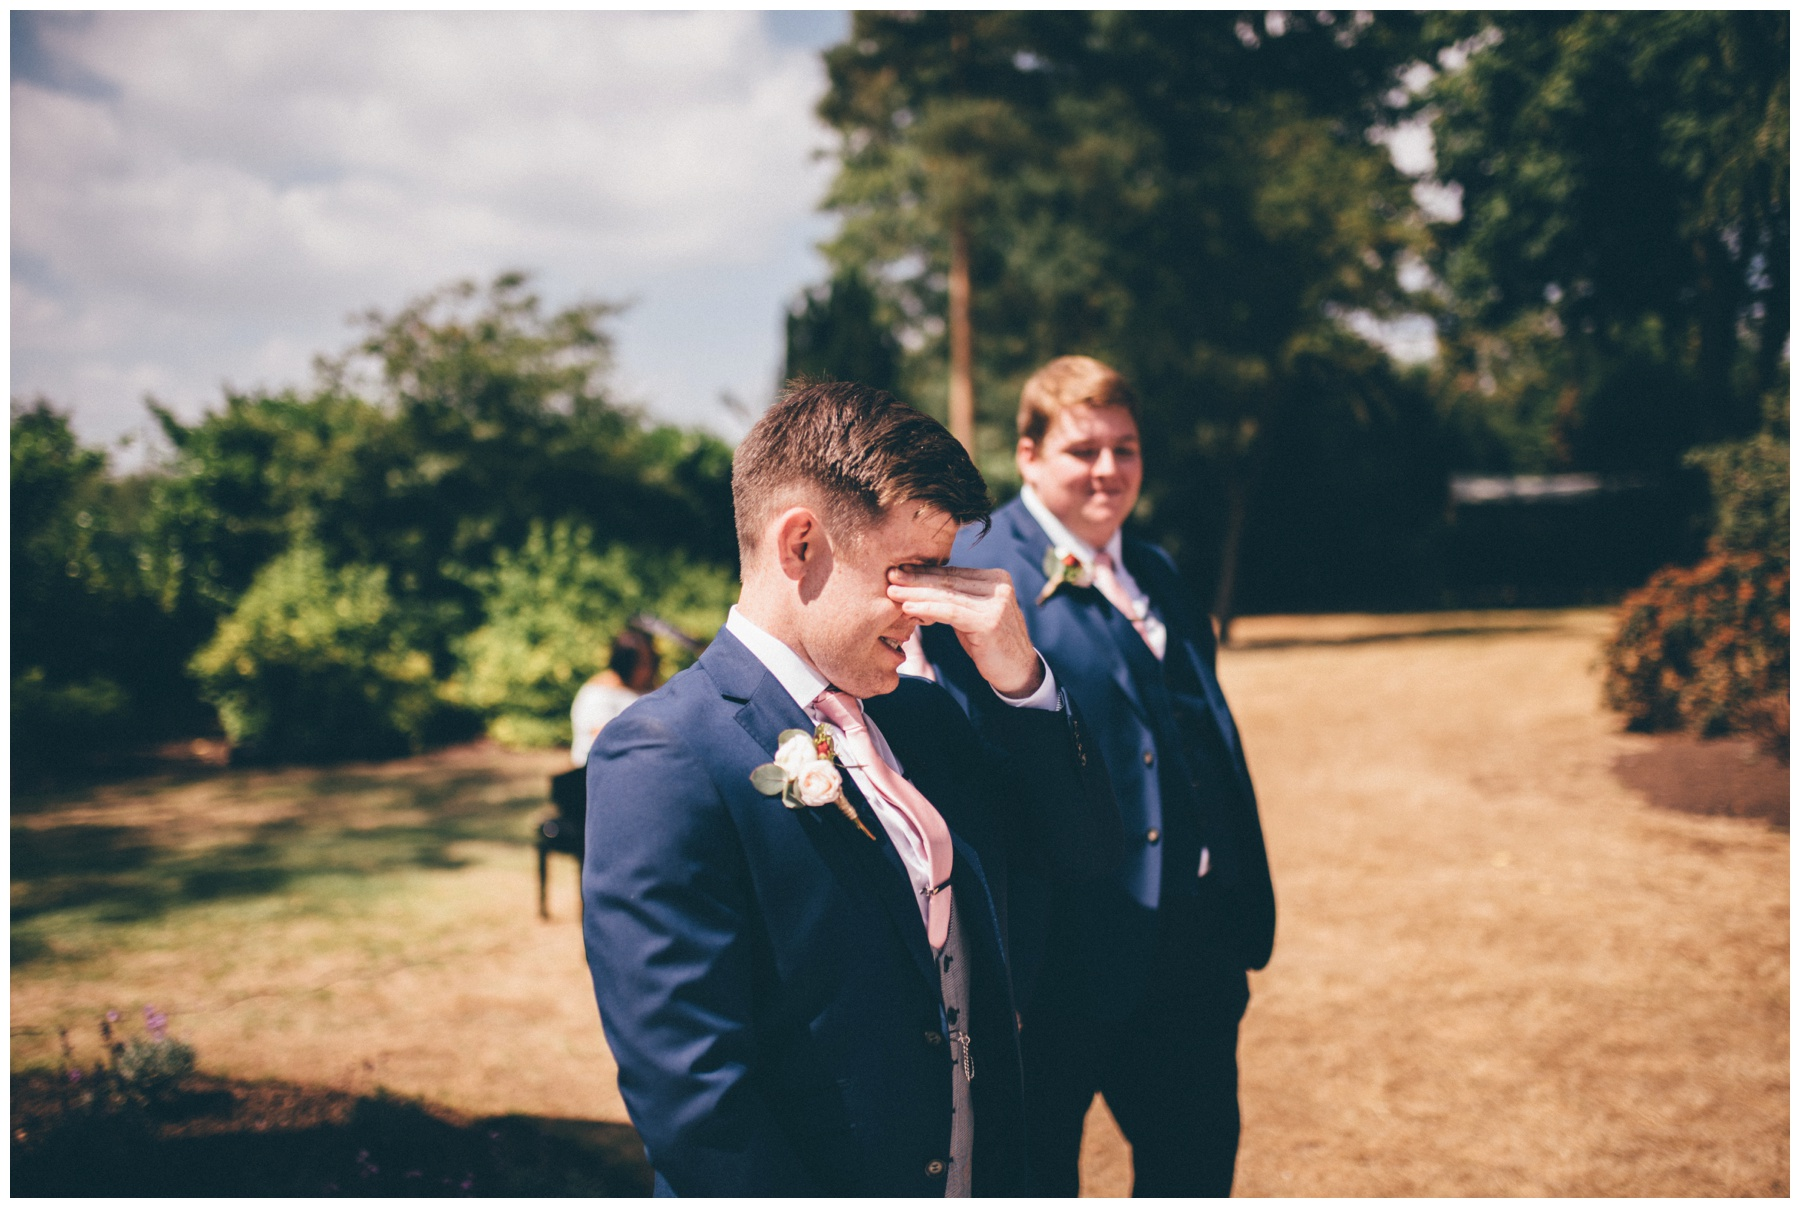 Groom tearing up at the top of the aisle in new Cheshire wedding venue, Tilstone House in Tarporley.